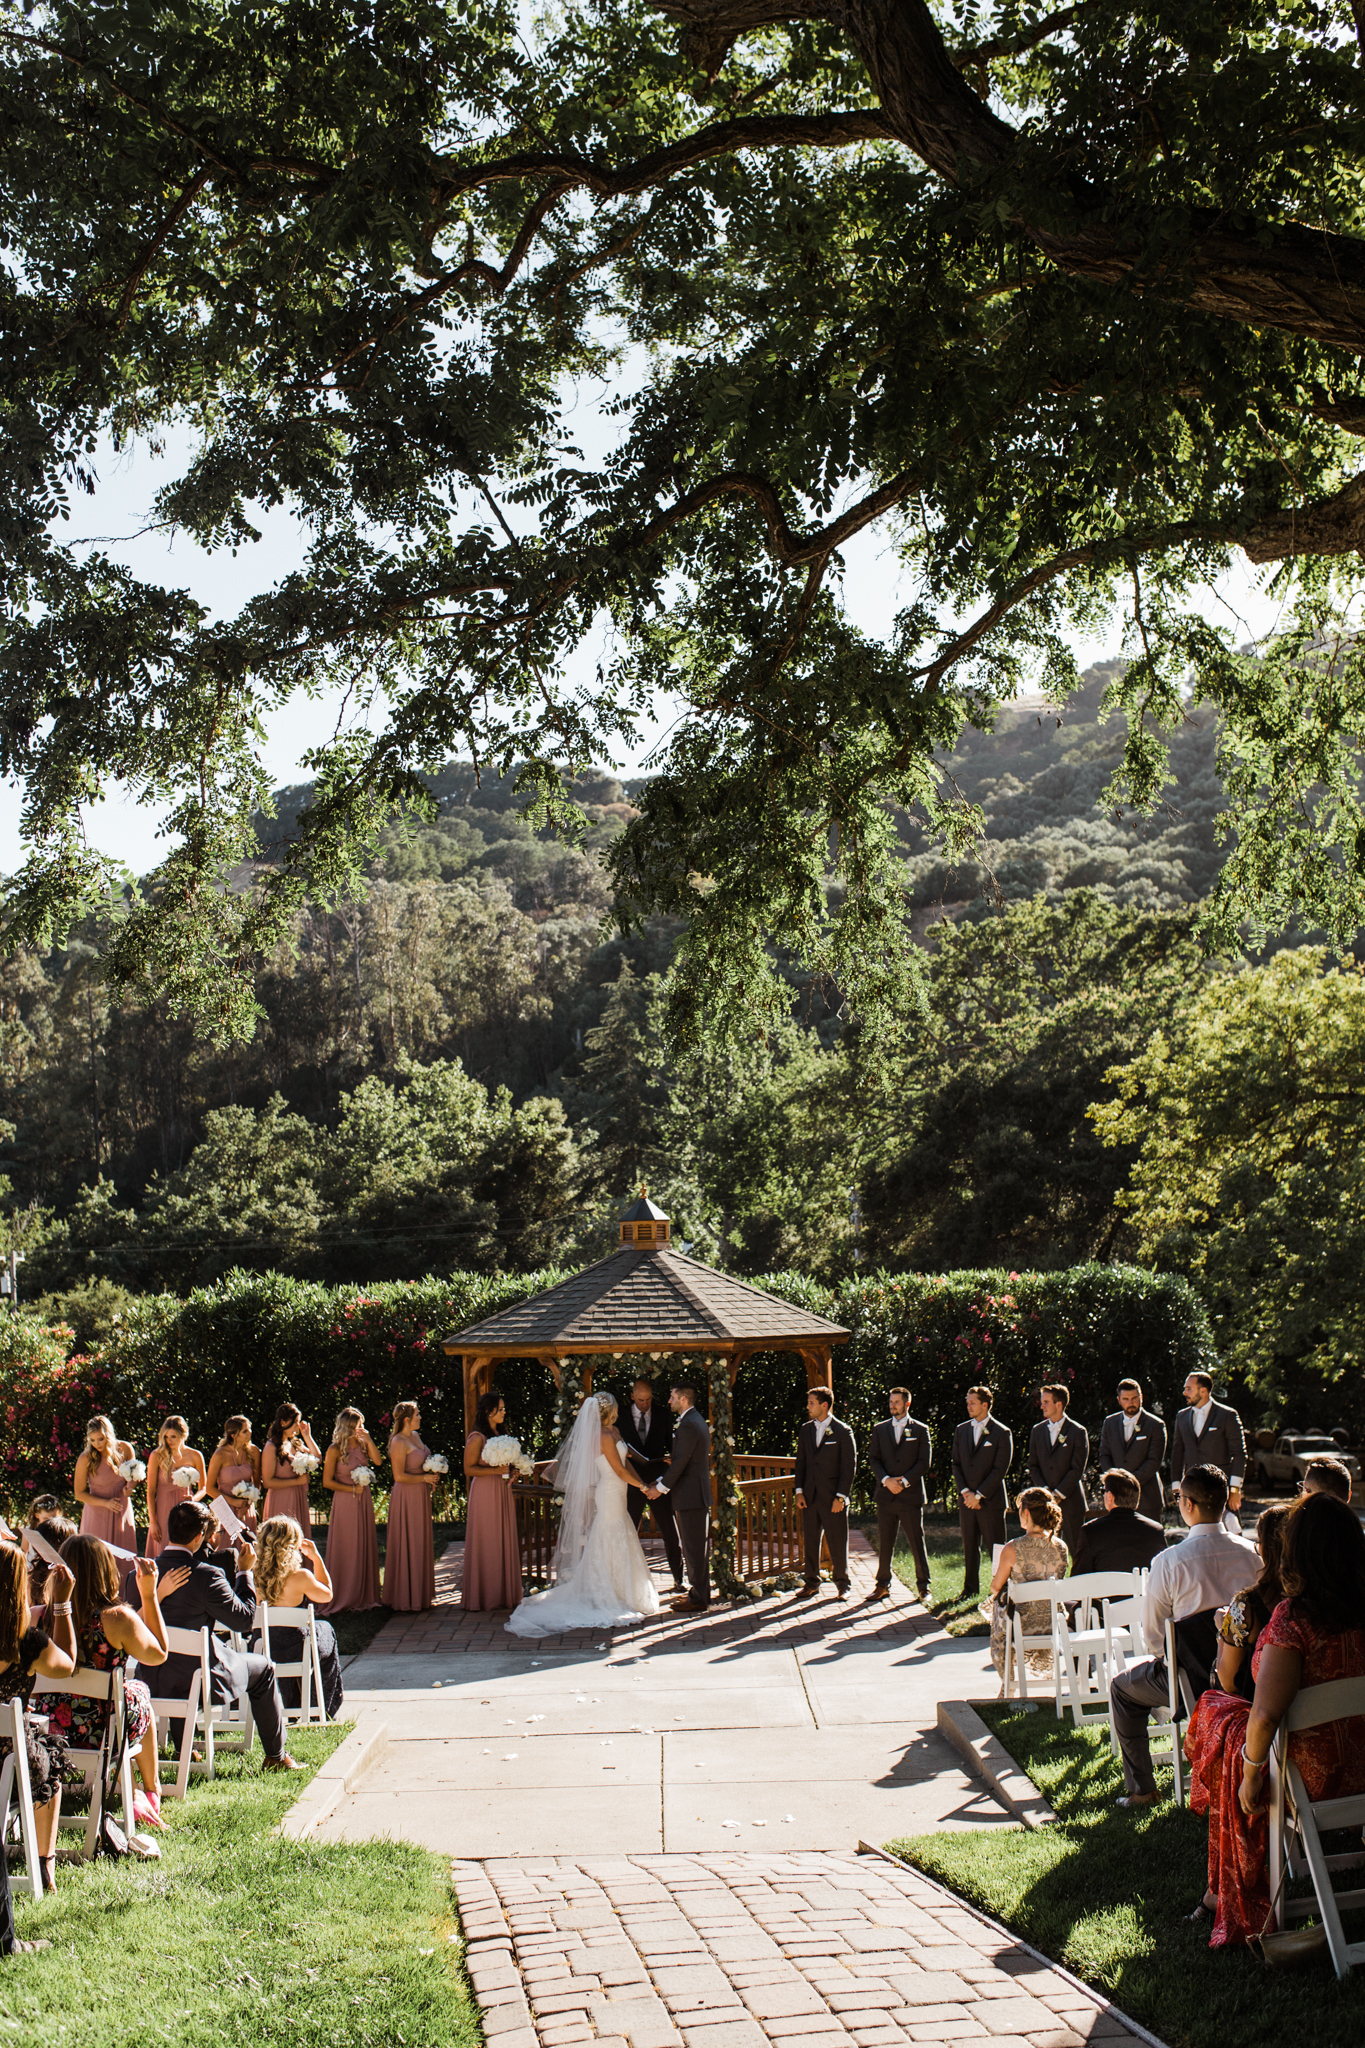 Wedding Ceremony Elliston Vineyard Sunol.jpg